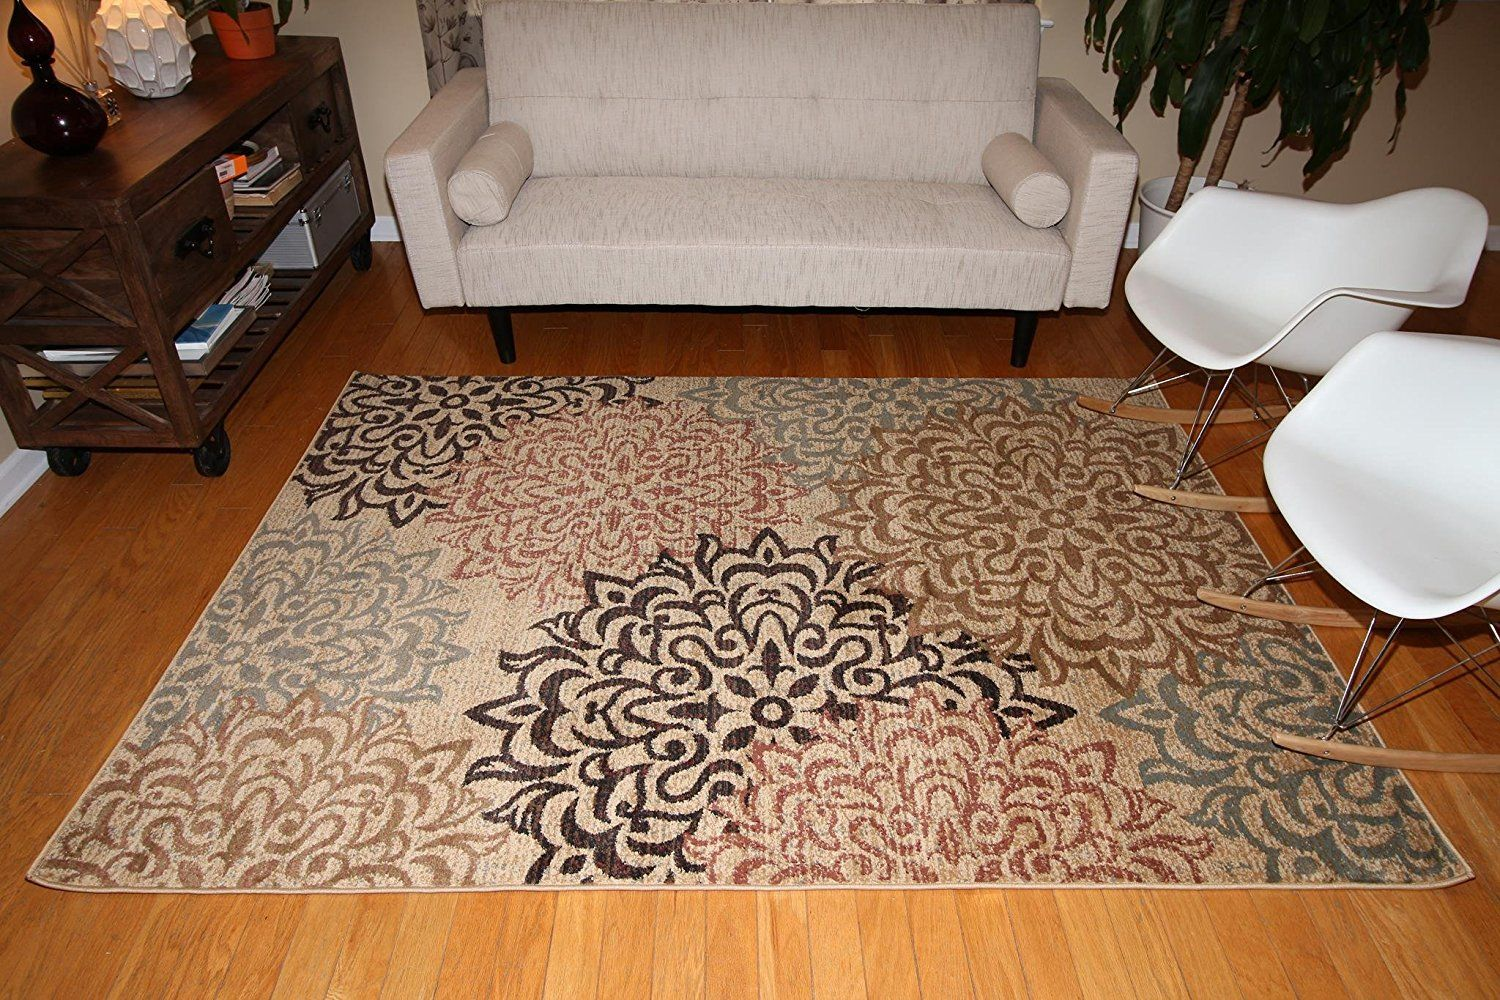 New City Contemporary Brown and Beige Modern